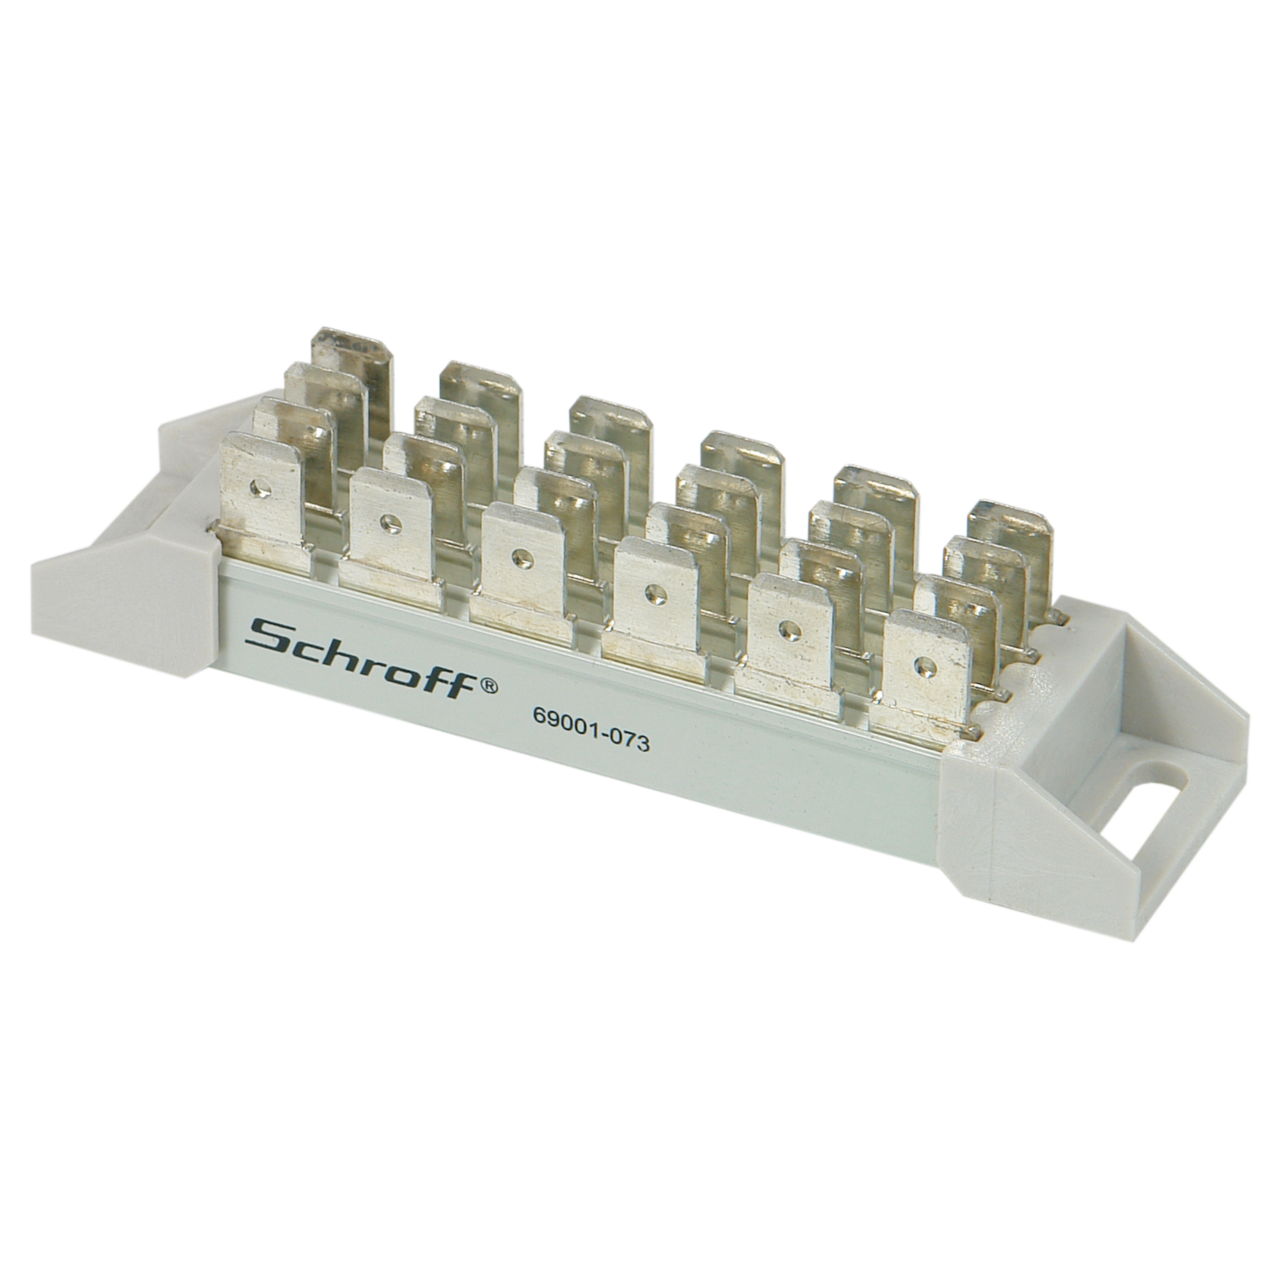 Image for Busbar, 4-pole for Faston connectors, 6.3 x 0.8 mm from Schroff | Europe, Middle East, Africa and India